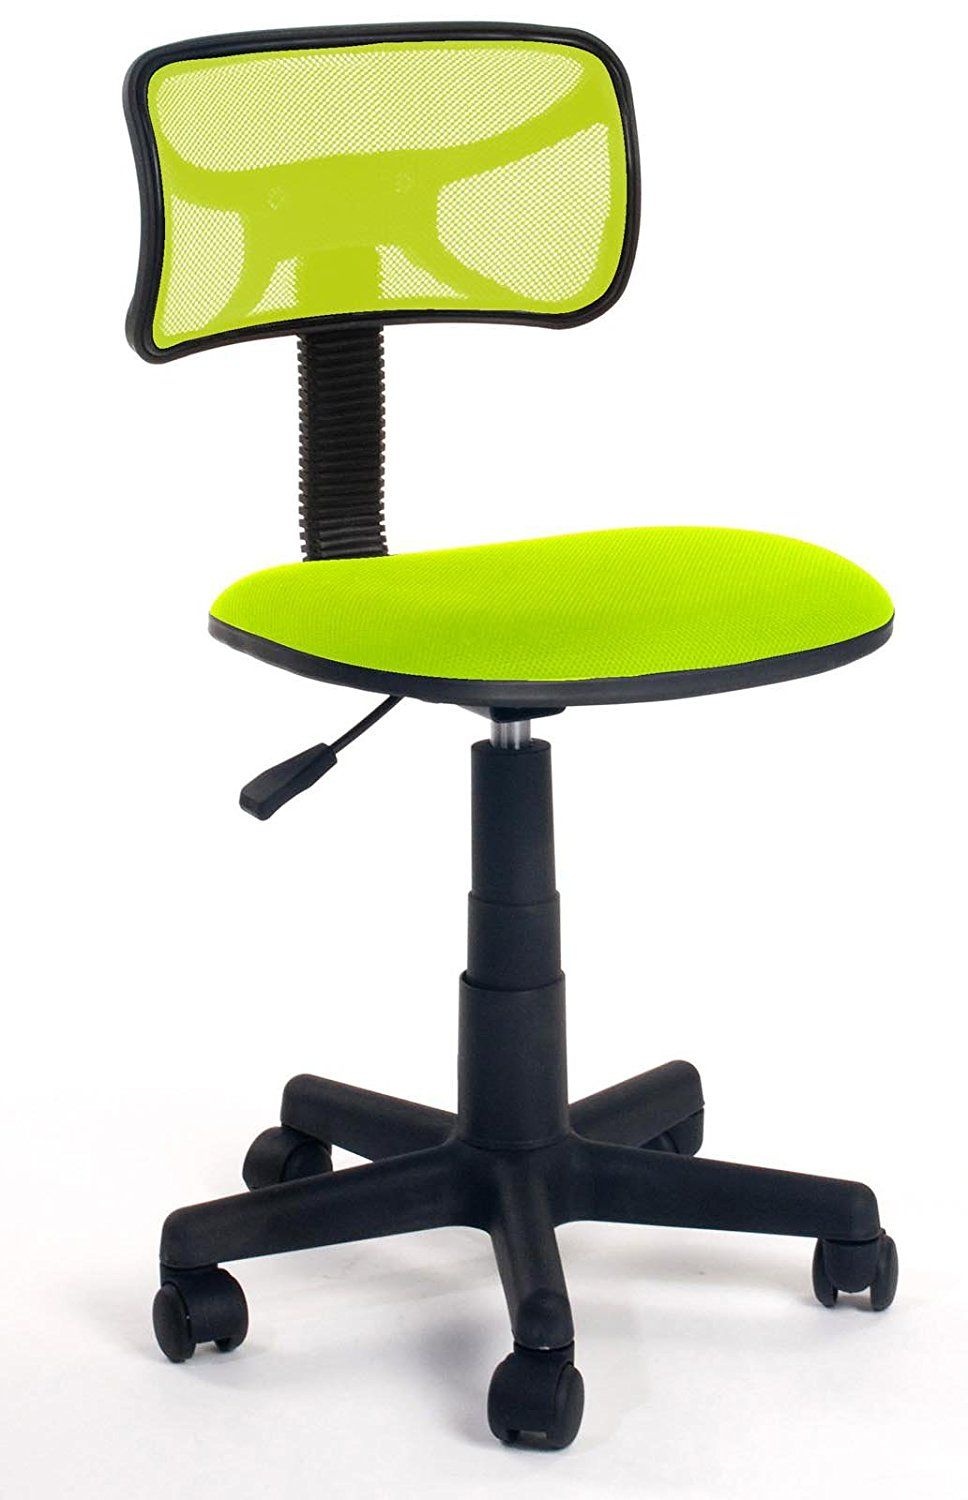 Top rated executive office chairs